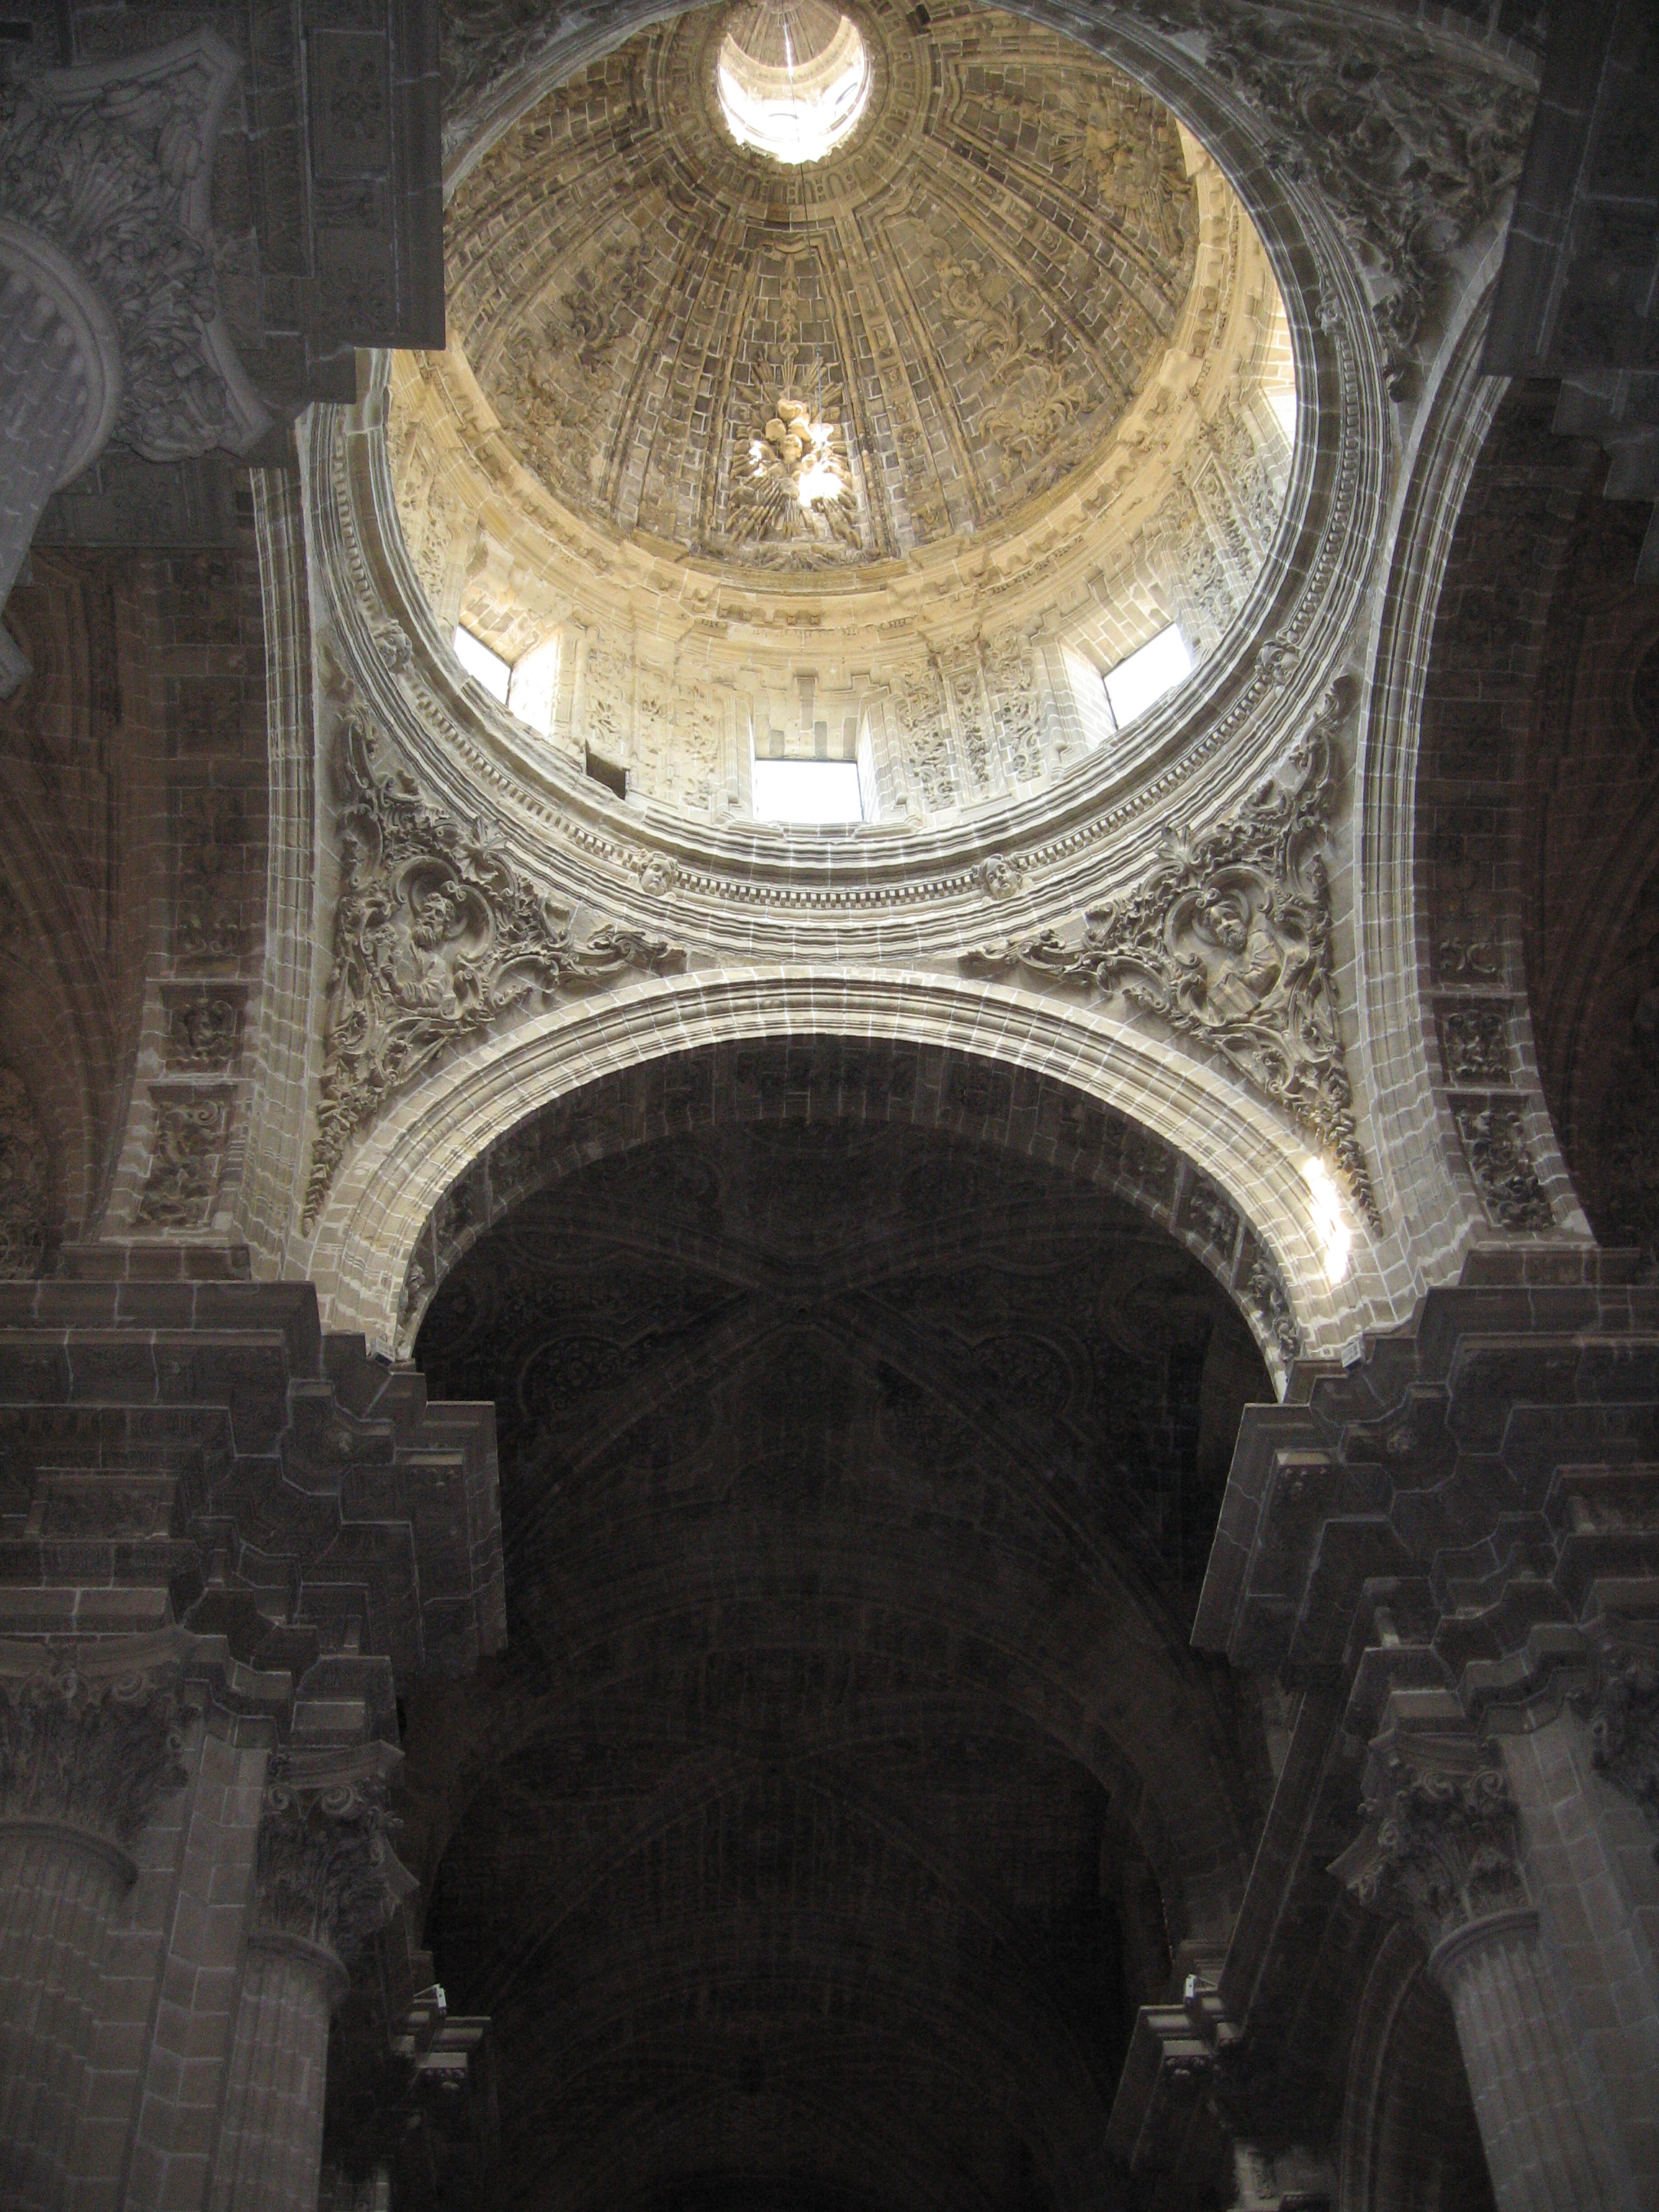 http://upload.wikimedia.org/wikipedia/commons/2/26/InteriorCatedralJerez.jpg